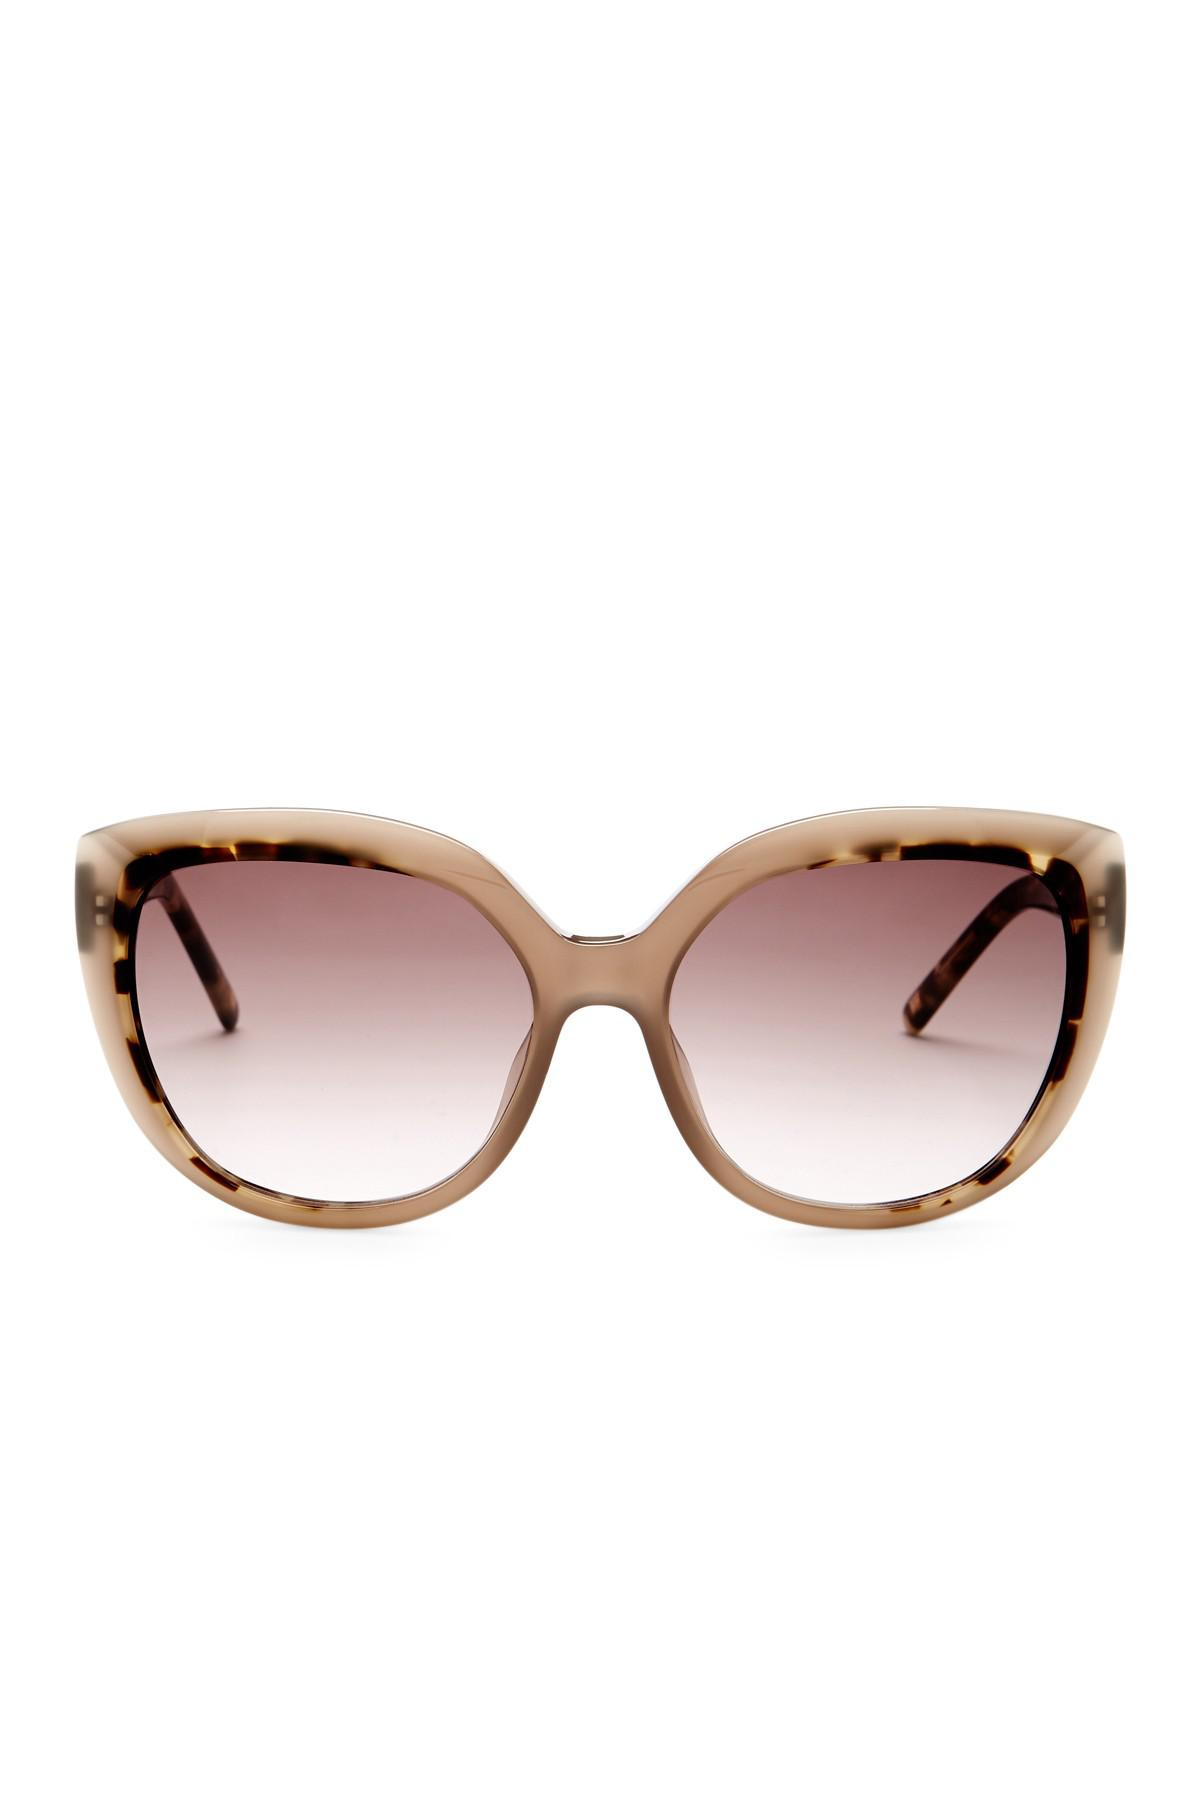 b16e1887e29 Gallery. Previously sold at  Nordstrom Rack · Women s Cat Eye Sunglasses